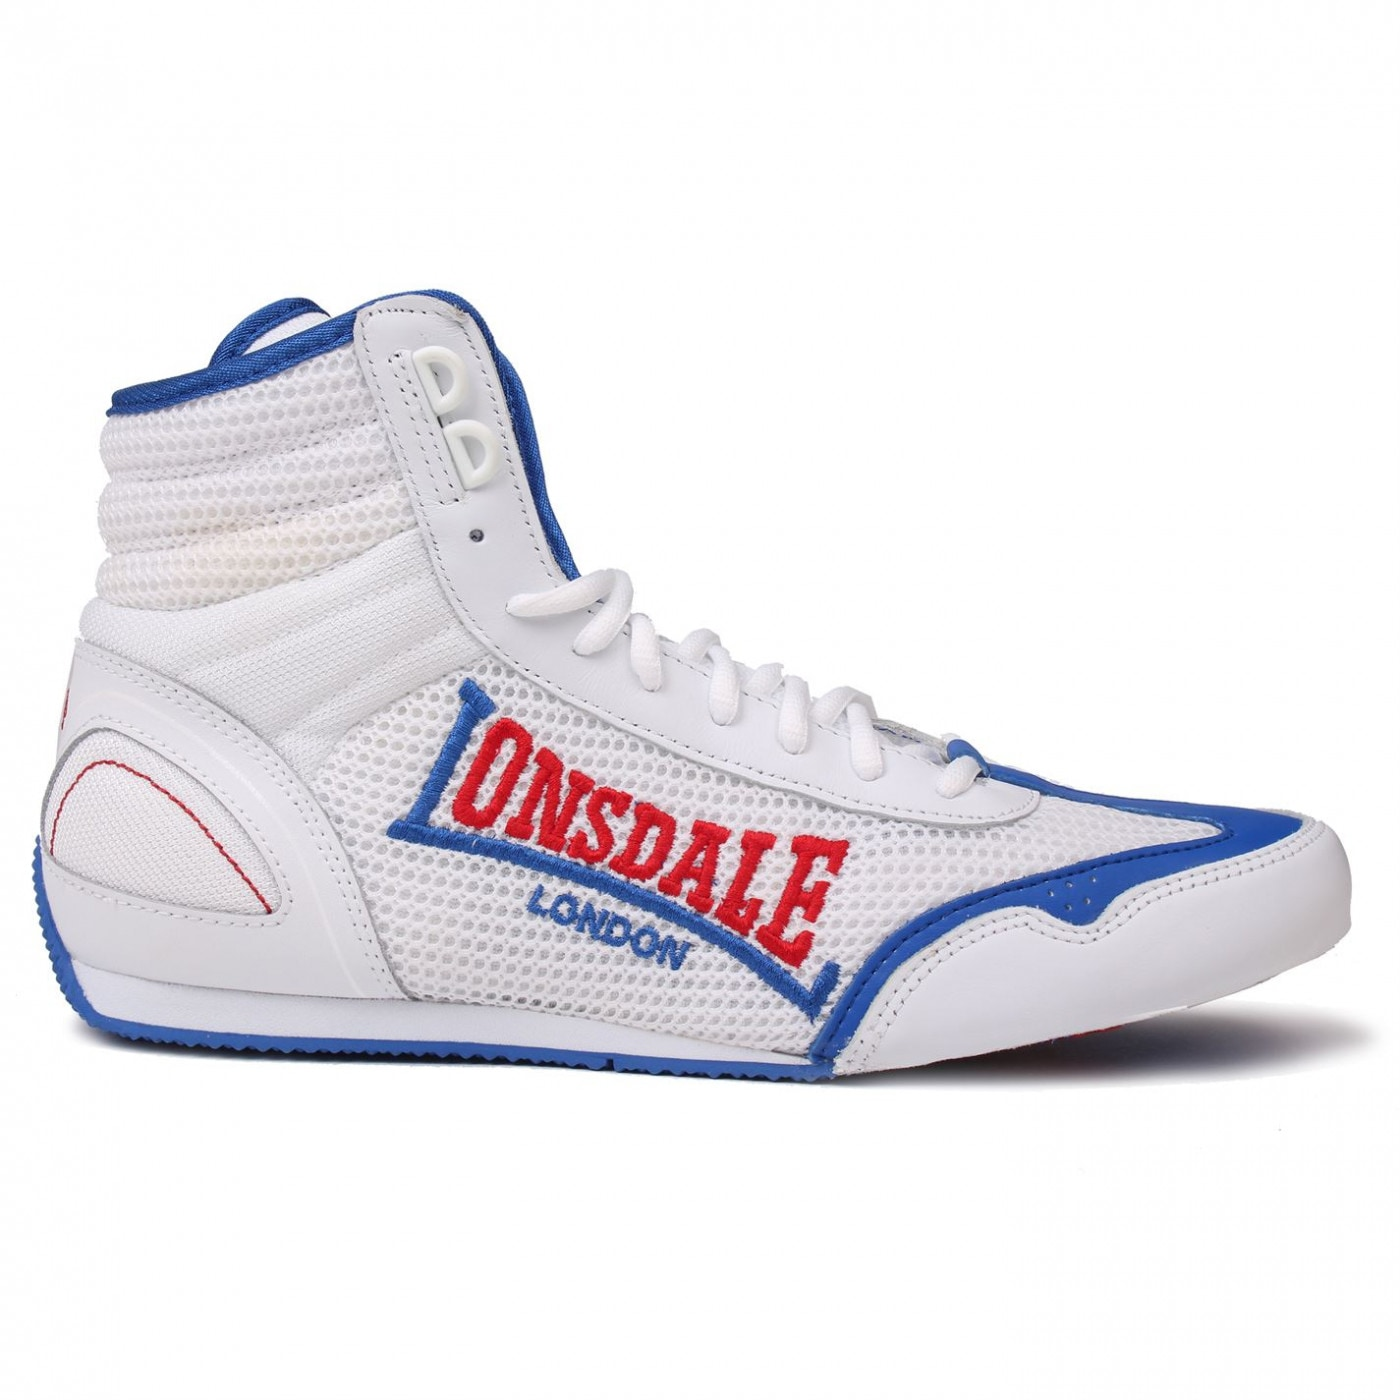 Men's trainers Lonsdale Contender